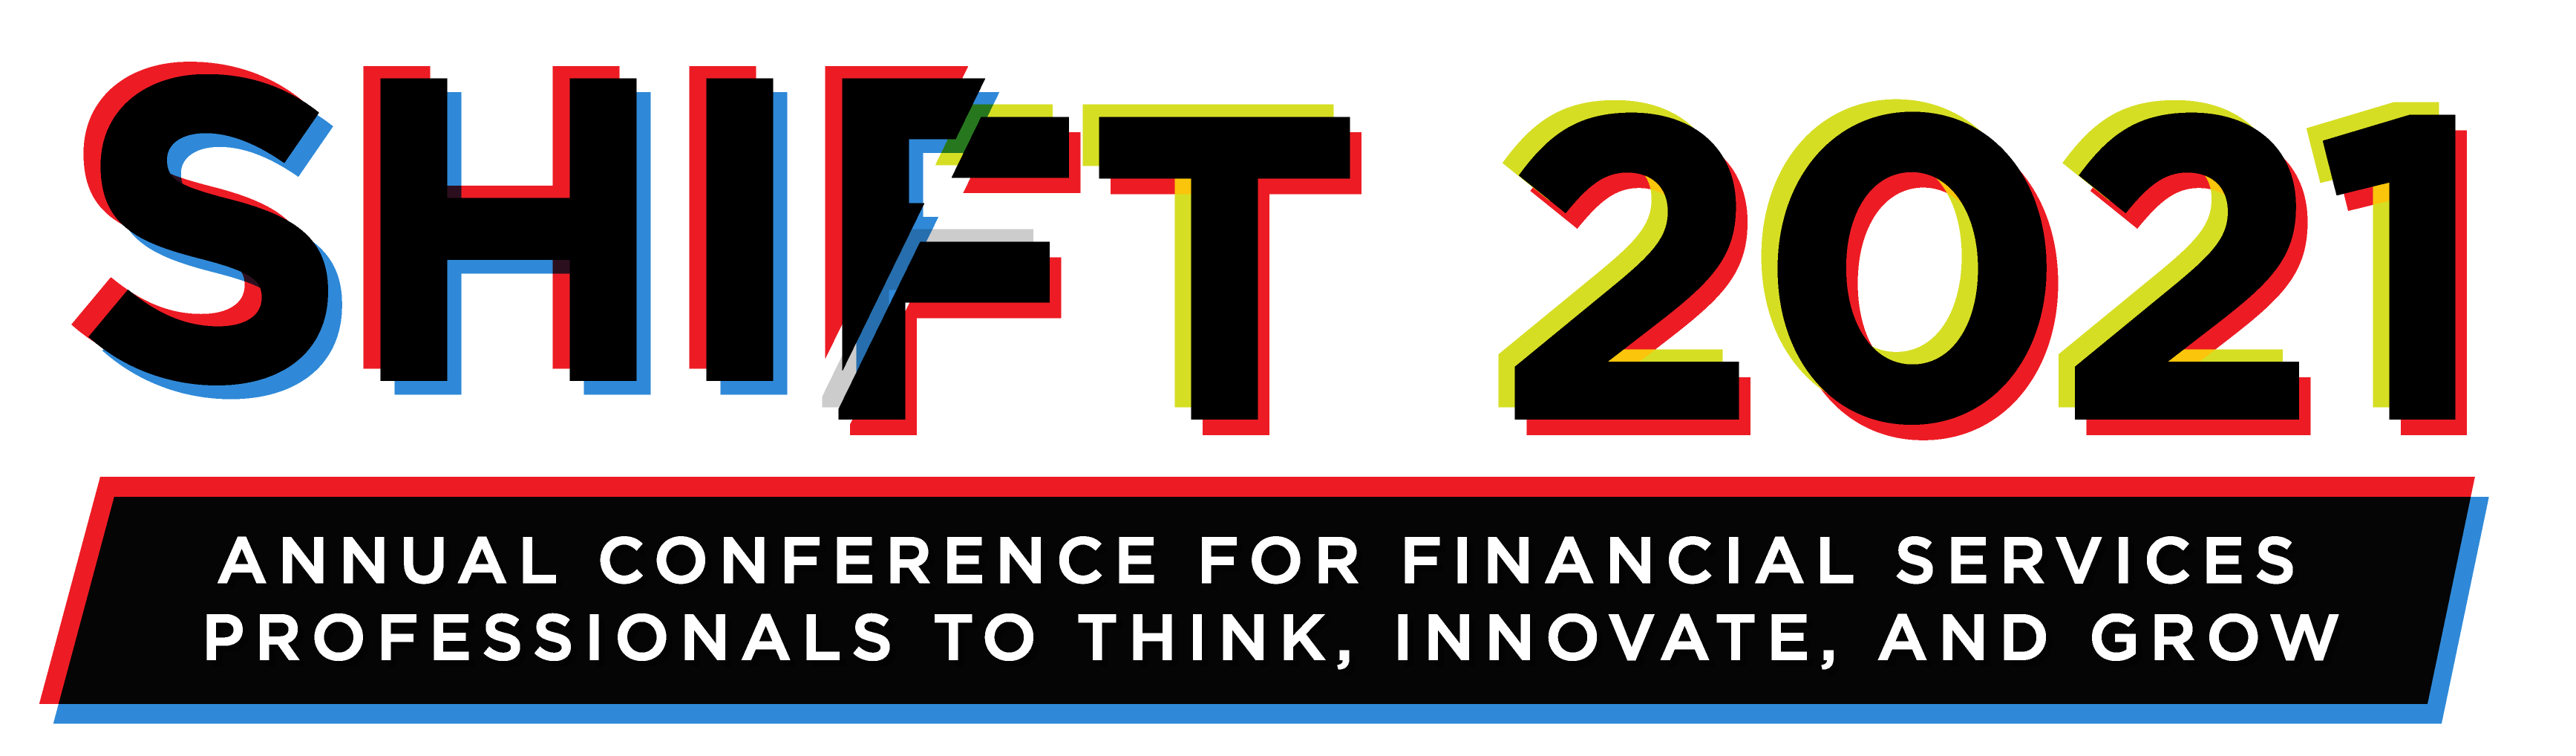 shift 2021 annual conference for financial services professionals to think, innovate, and grow